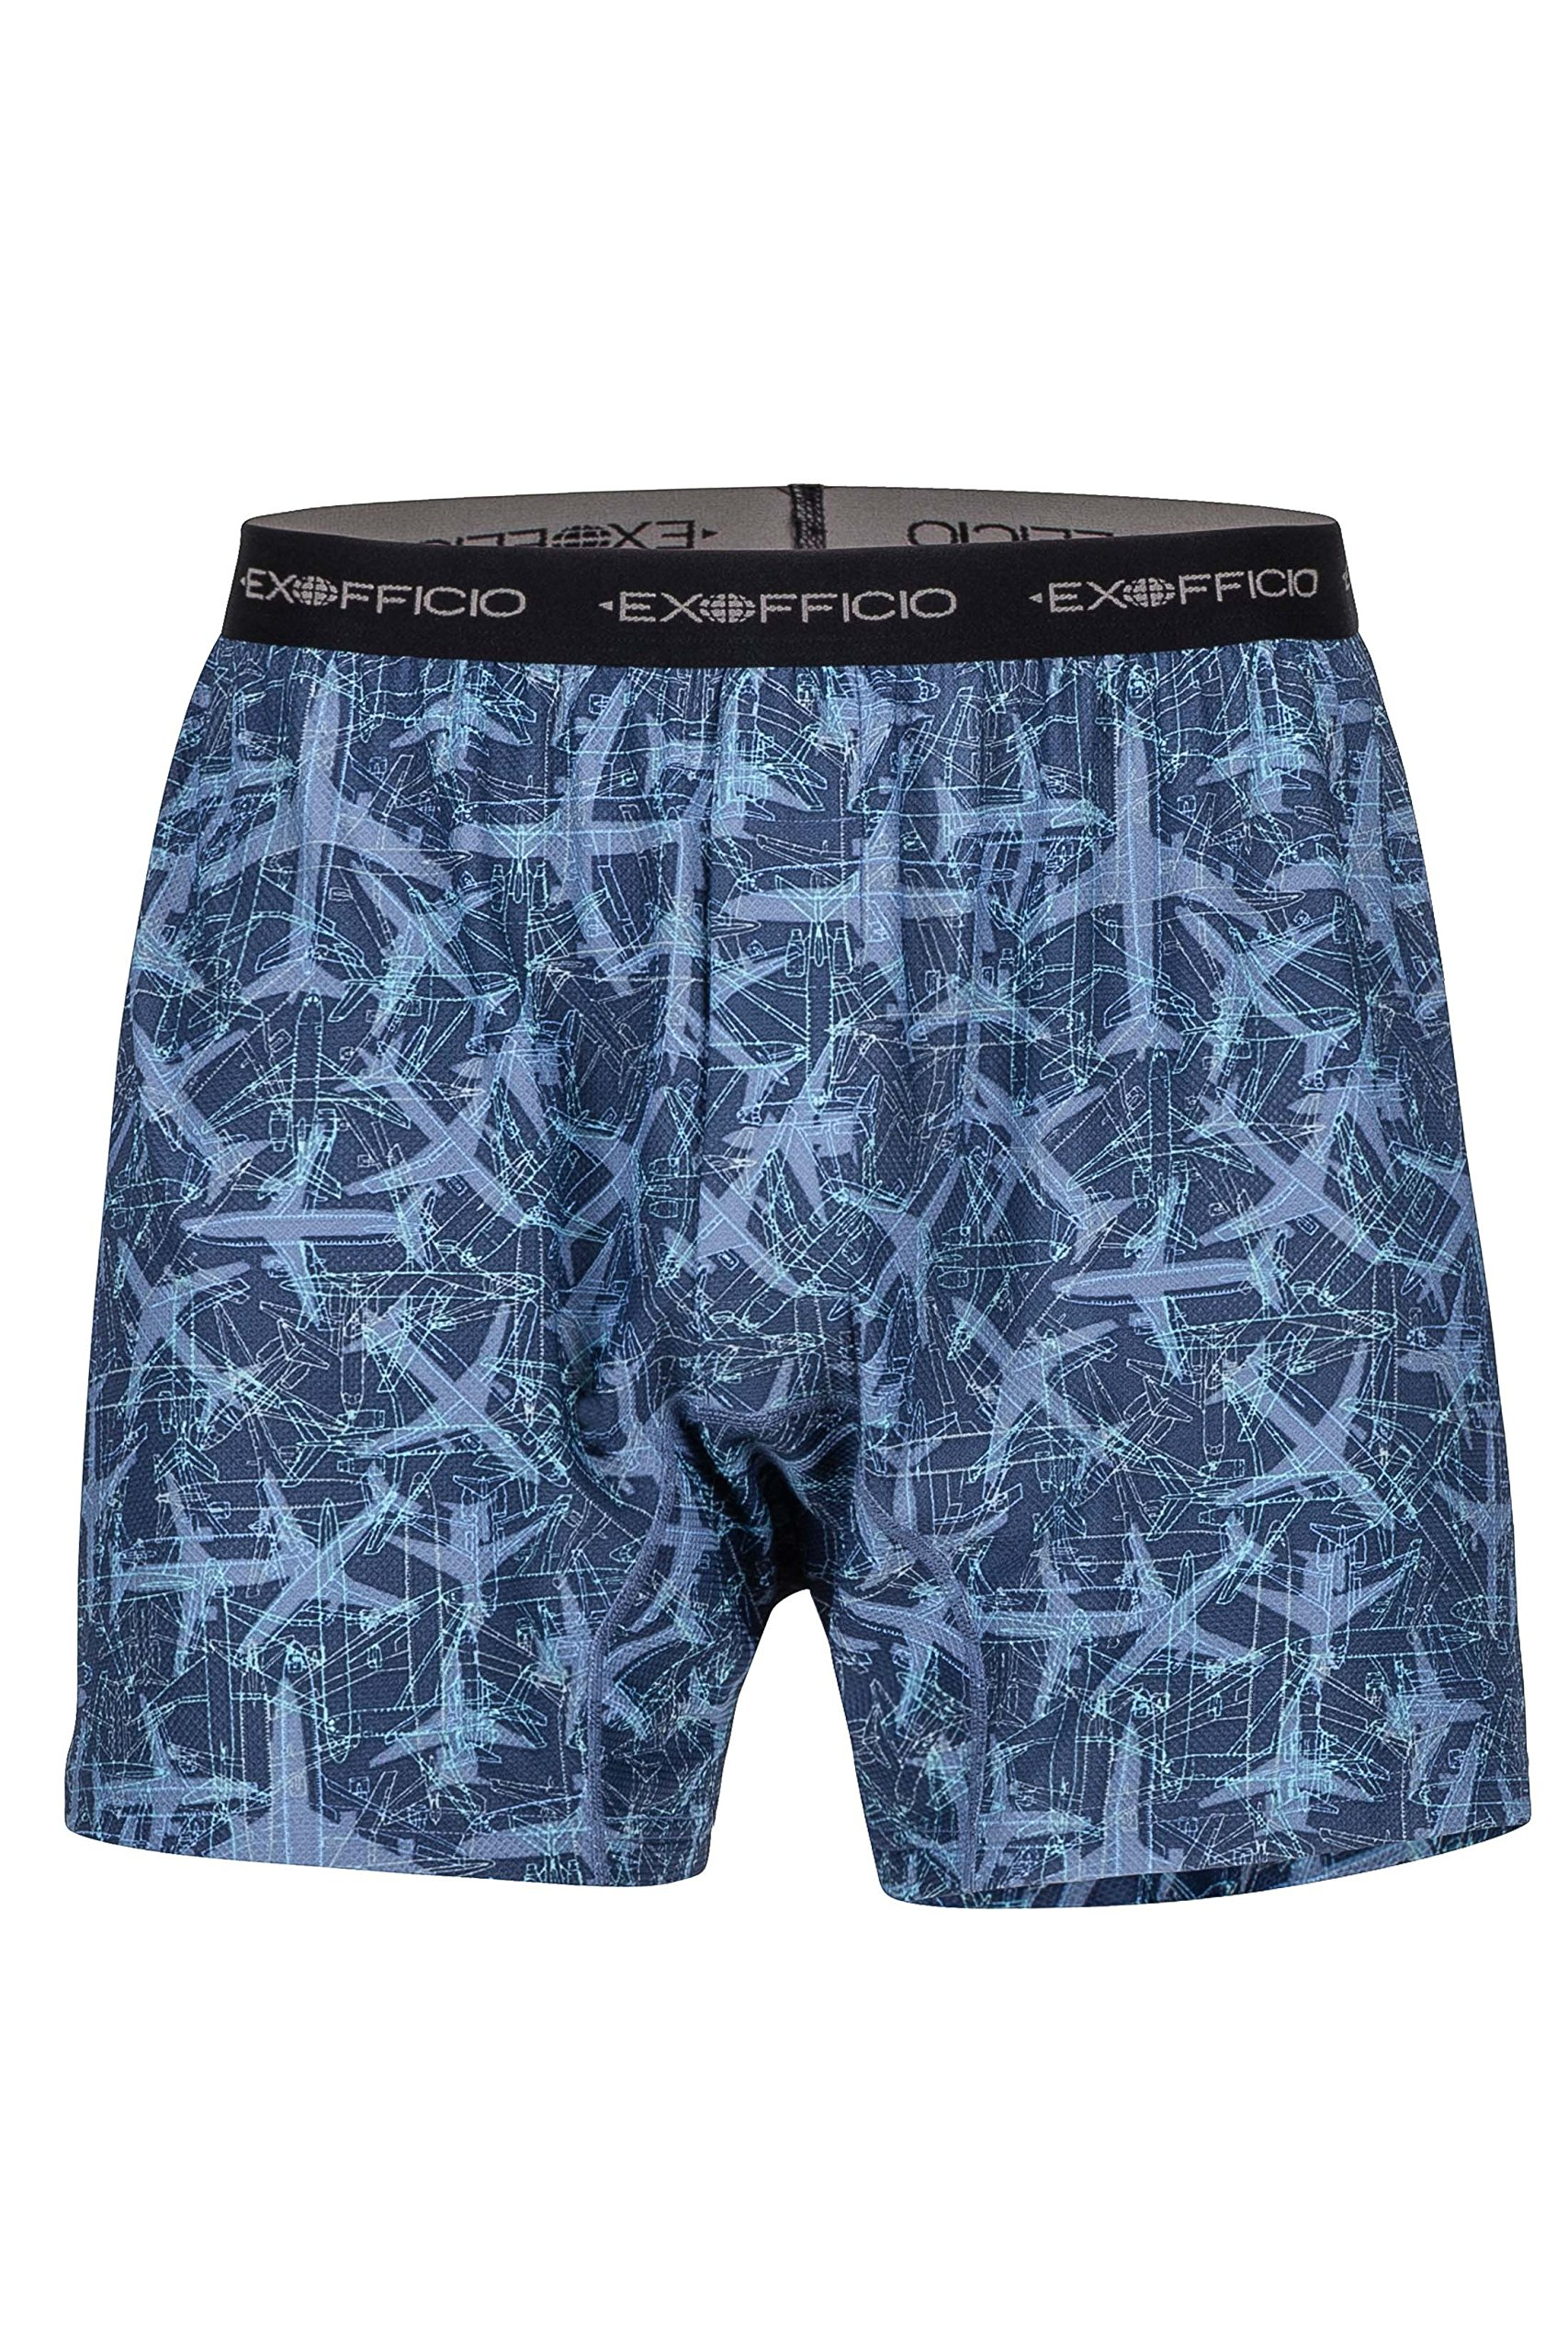 ExOfficio Men's Give-N-Go Print Boxer Shorts, Navy Planes, Medium by ExOfficio